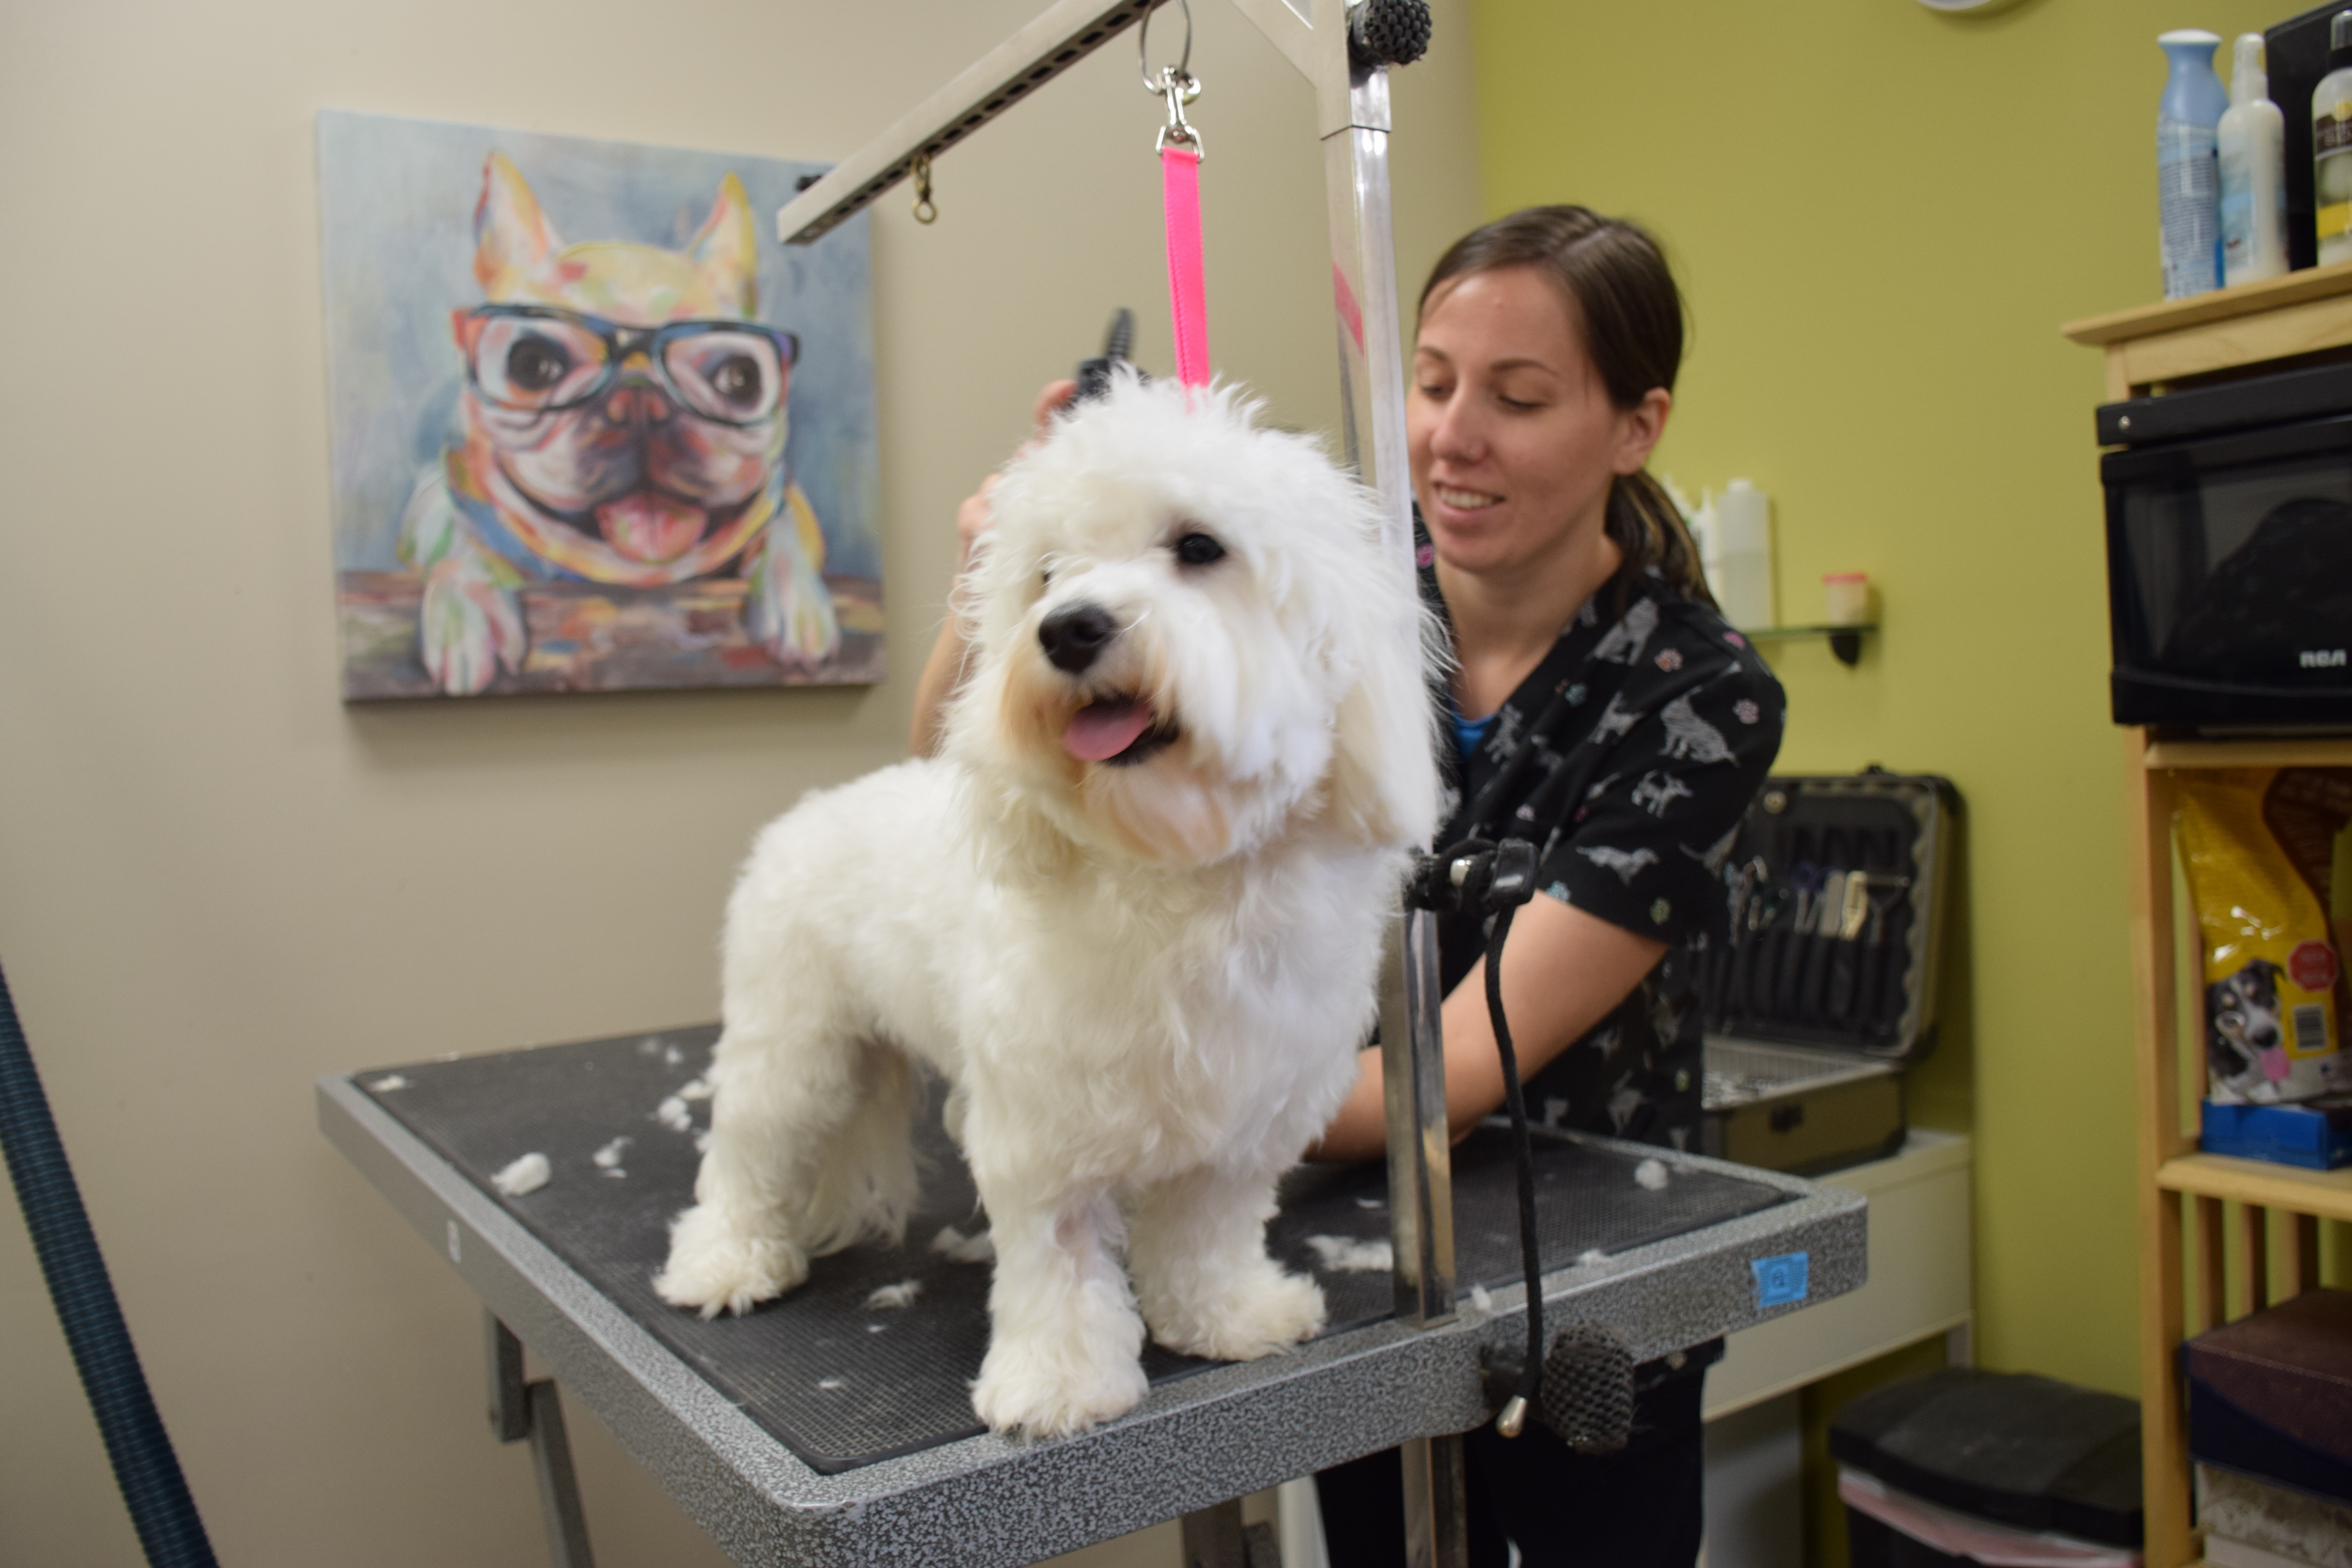 Uptown Pet Grooming groomer Chelsey Blundon with client Bella